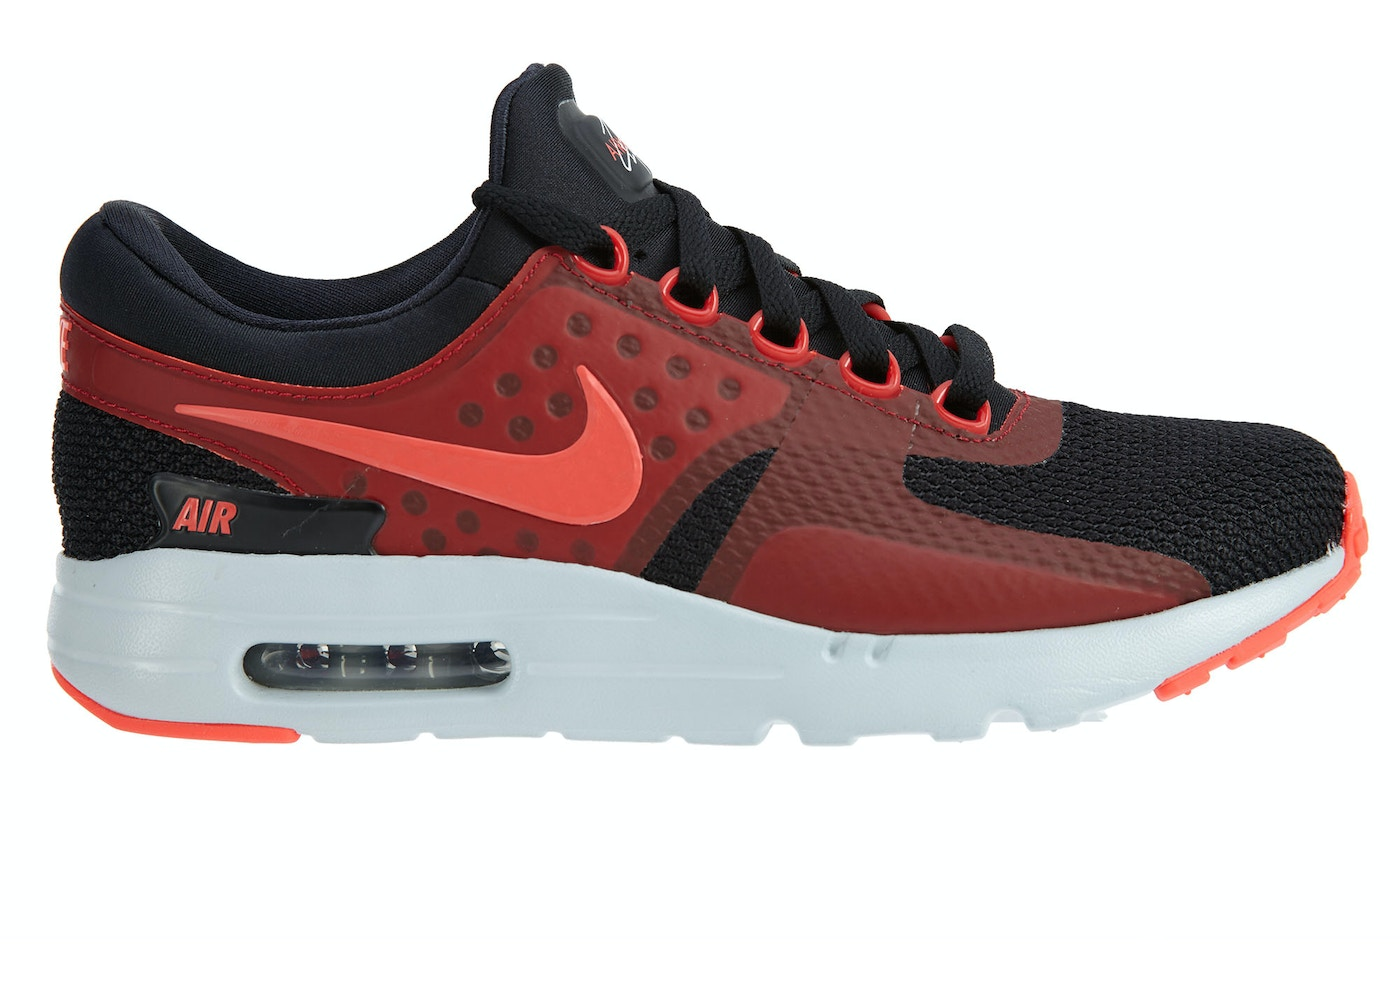 best loved f20d4 45e1f Sell. or Ask. Size --. View All Bids. Nike Ari Max Zero Essential Black Bright  Crimson Gym Red